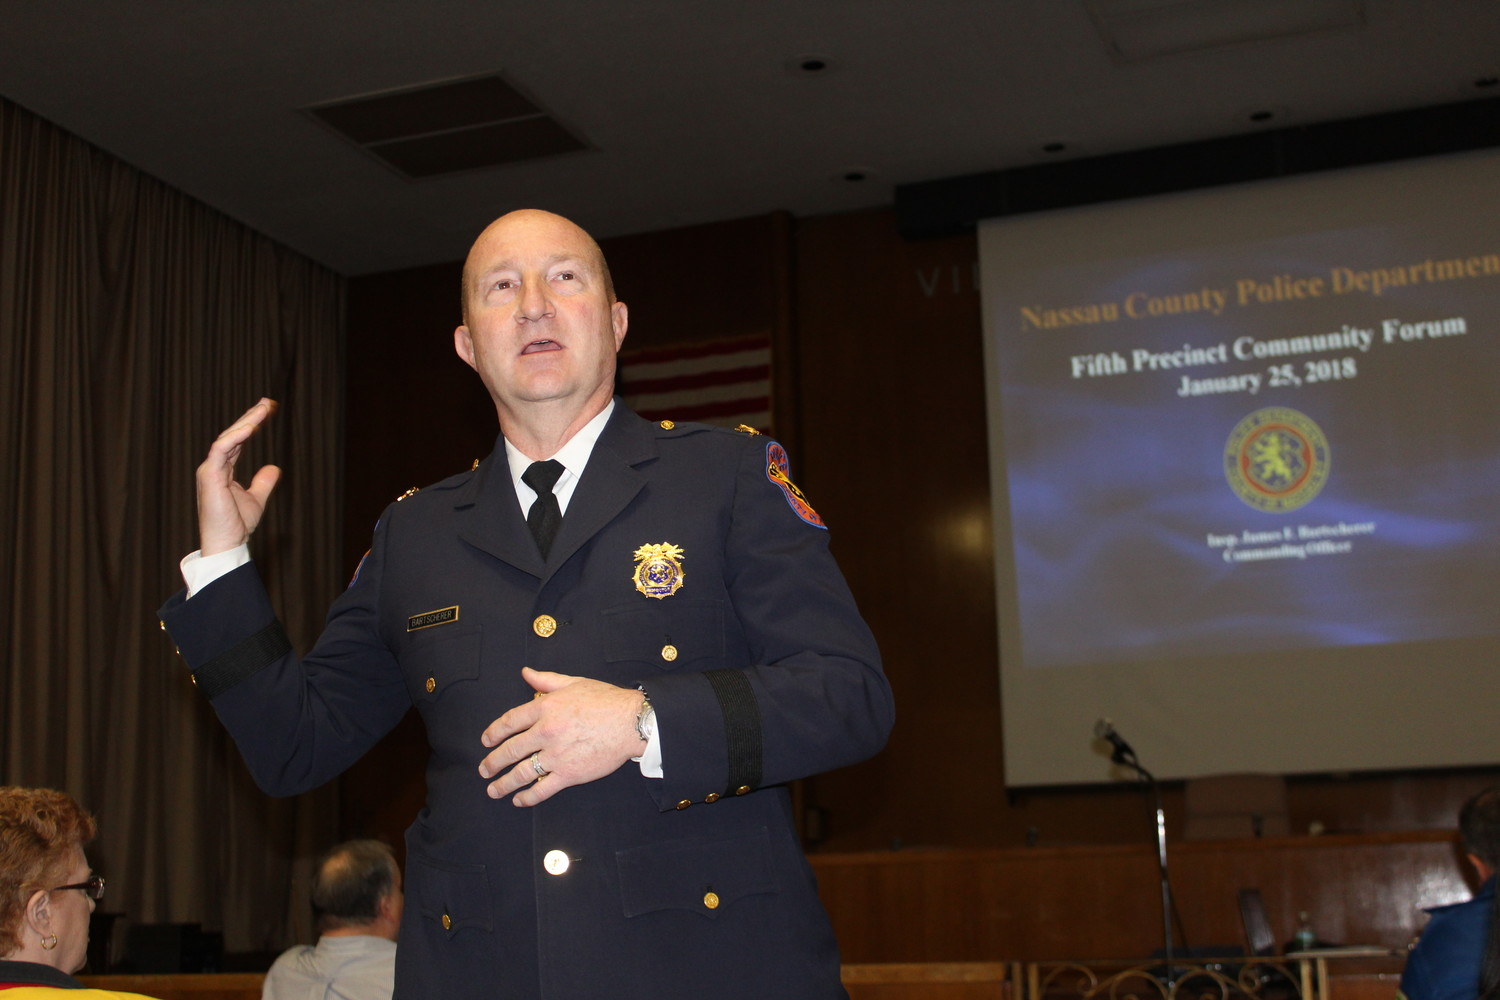 Inspector Jim Bartscherer spoke to a crowd of more than 20 Fifth Precinct residents about crime rates in the area on Jan. 25.